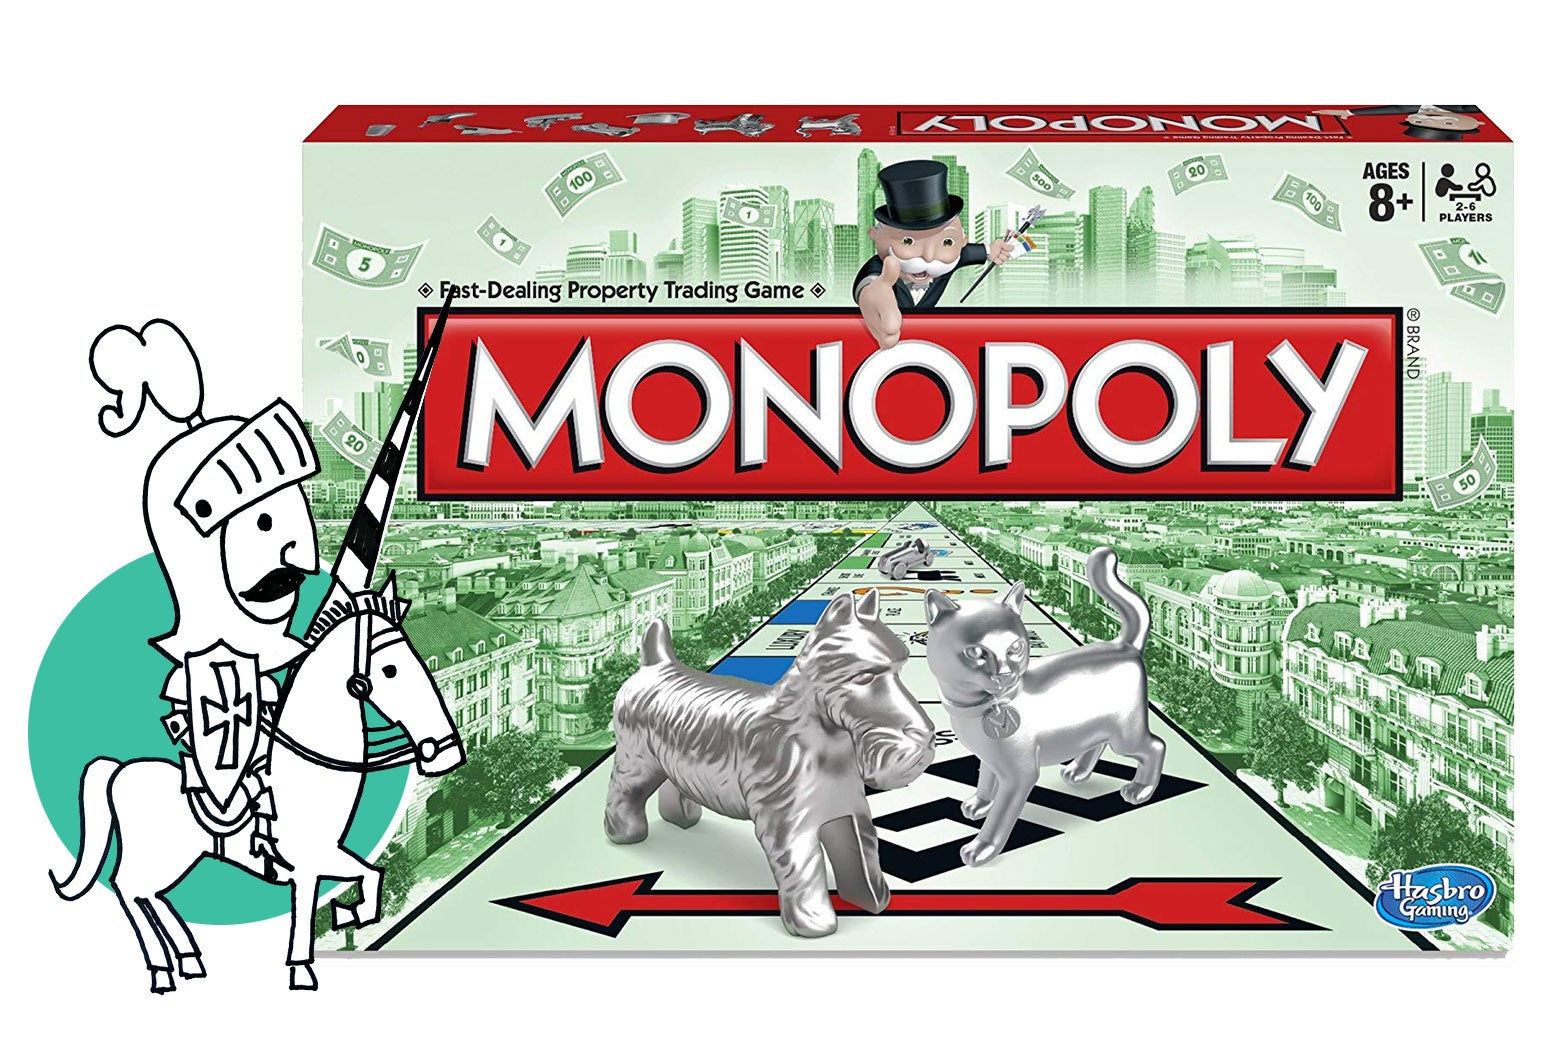 A Monopoly game being defended by a knight.